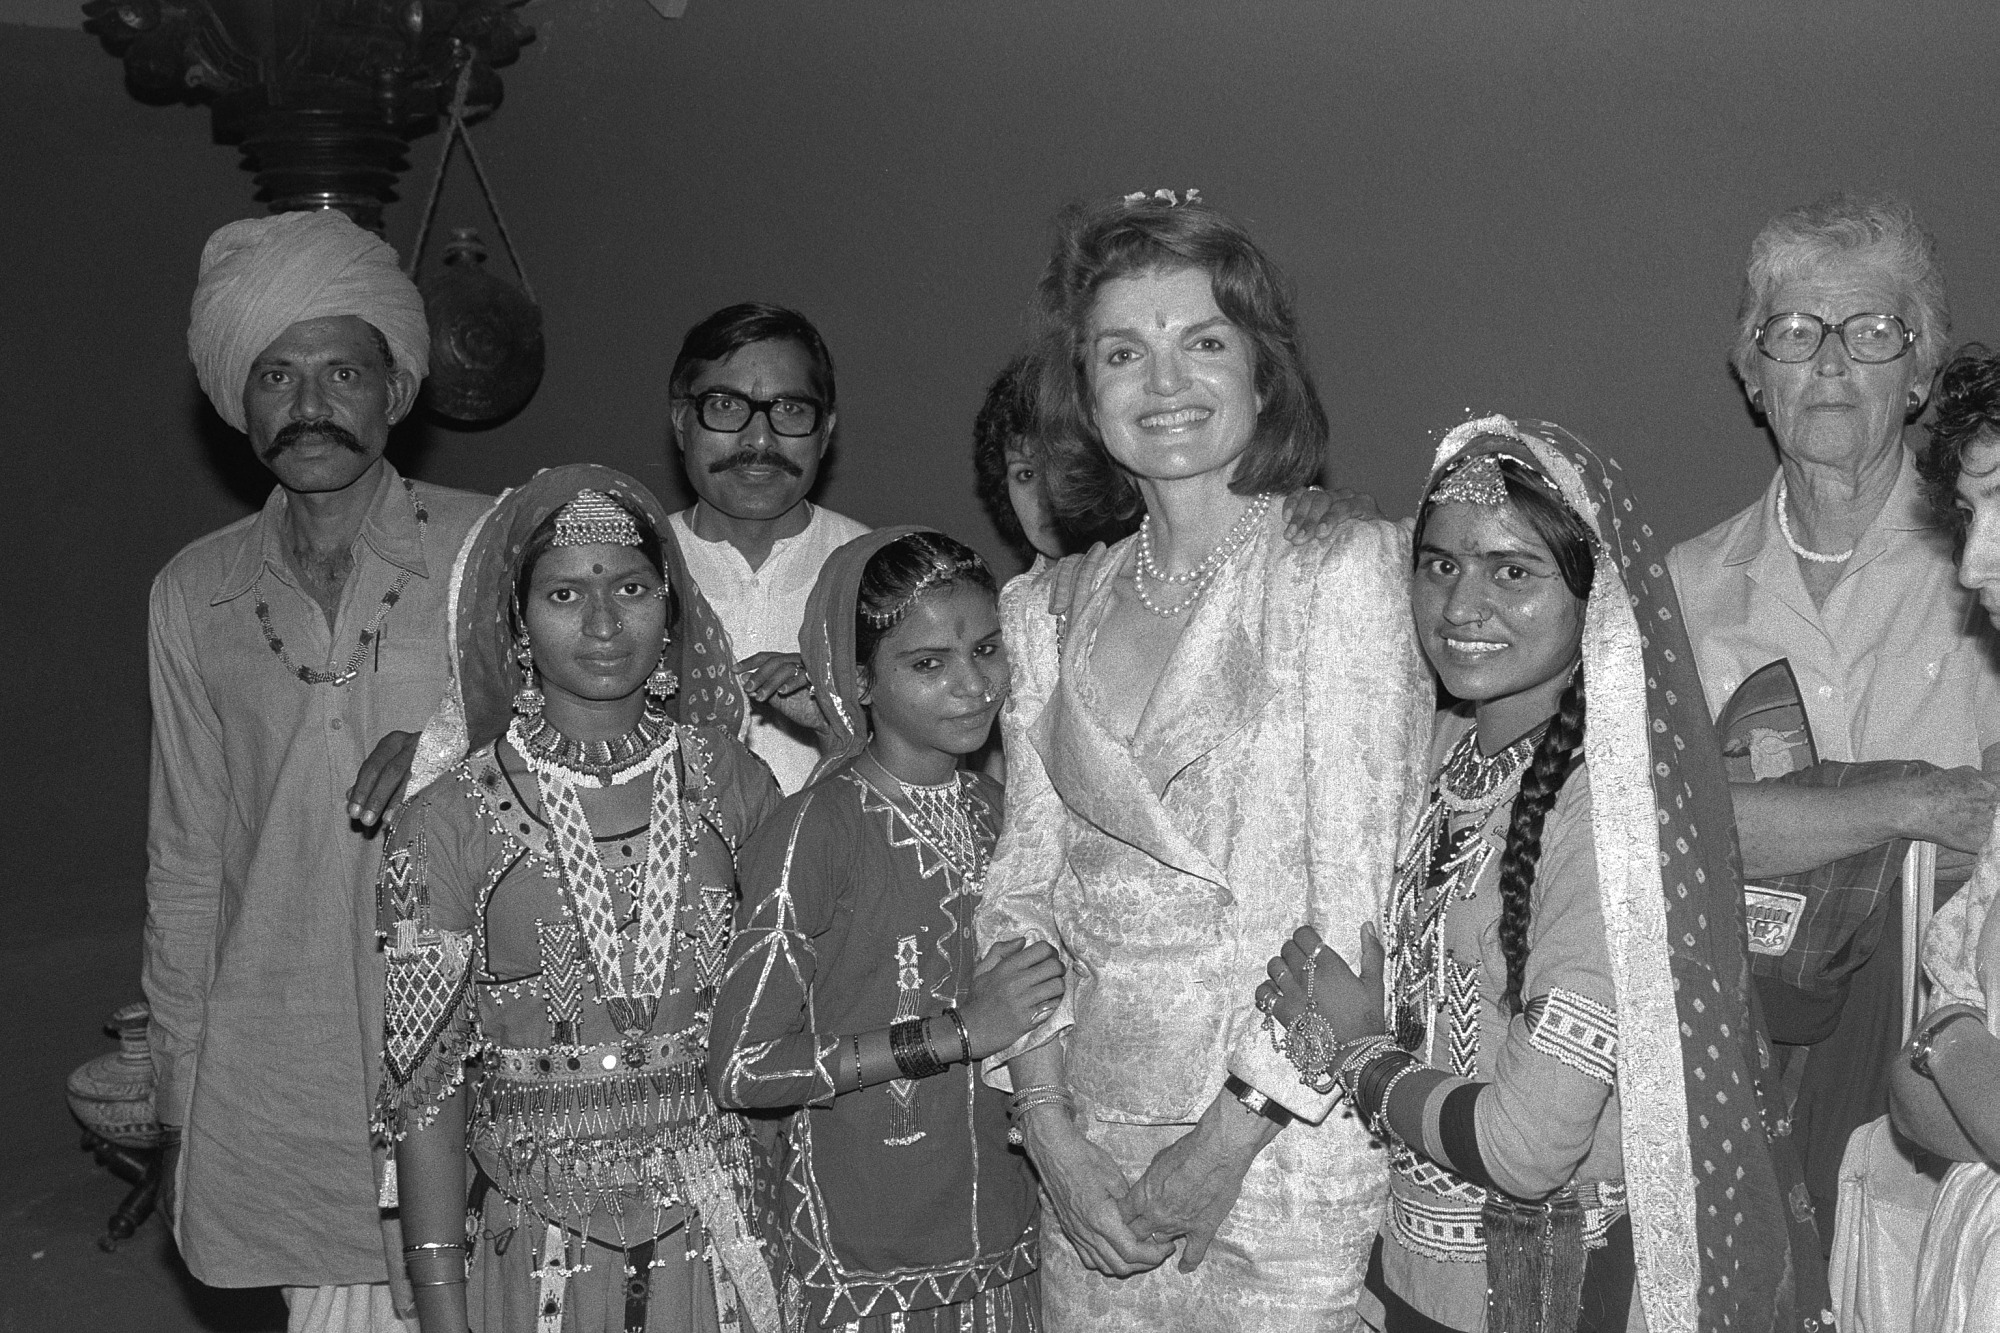 Jun 4 Jacqueline Kennedy Onassis at National Museum of Natural History